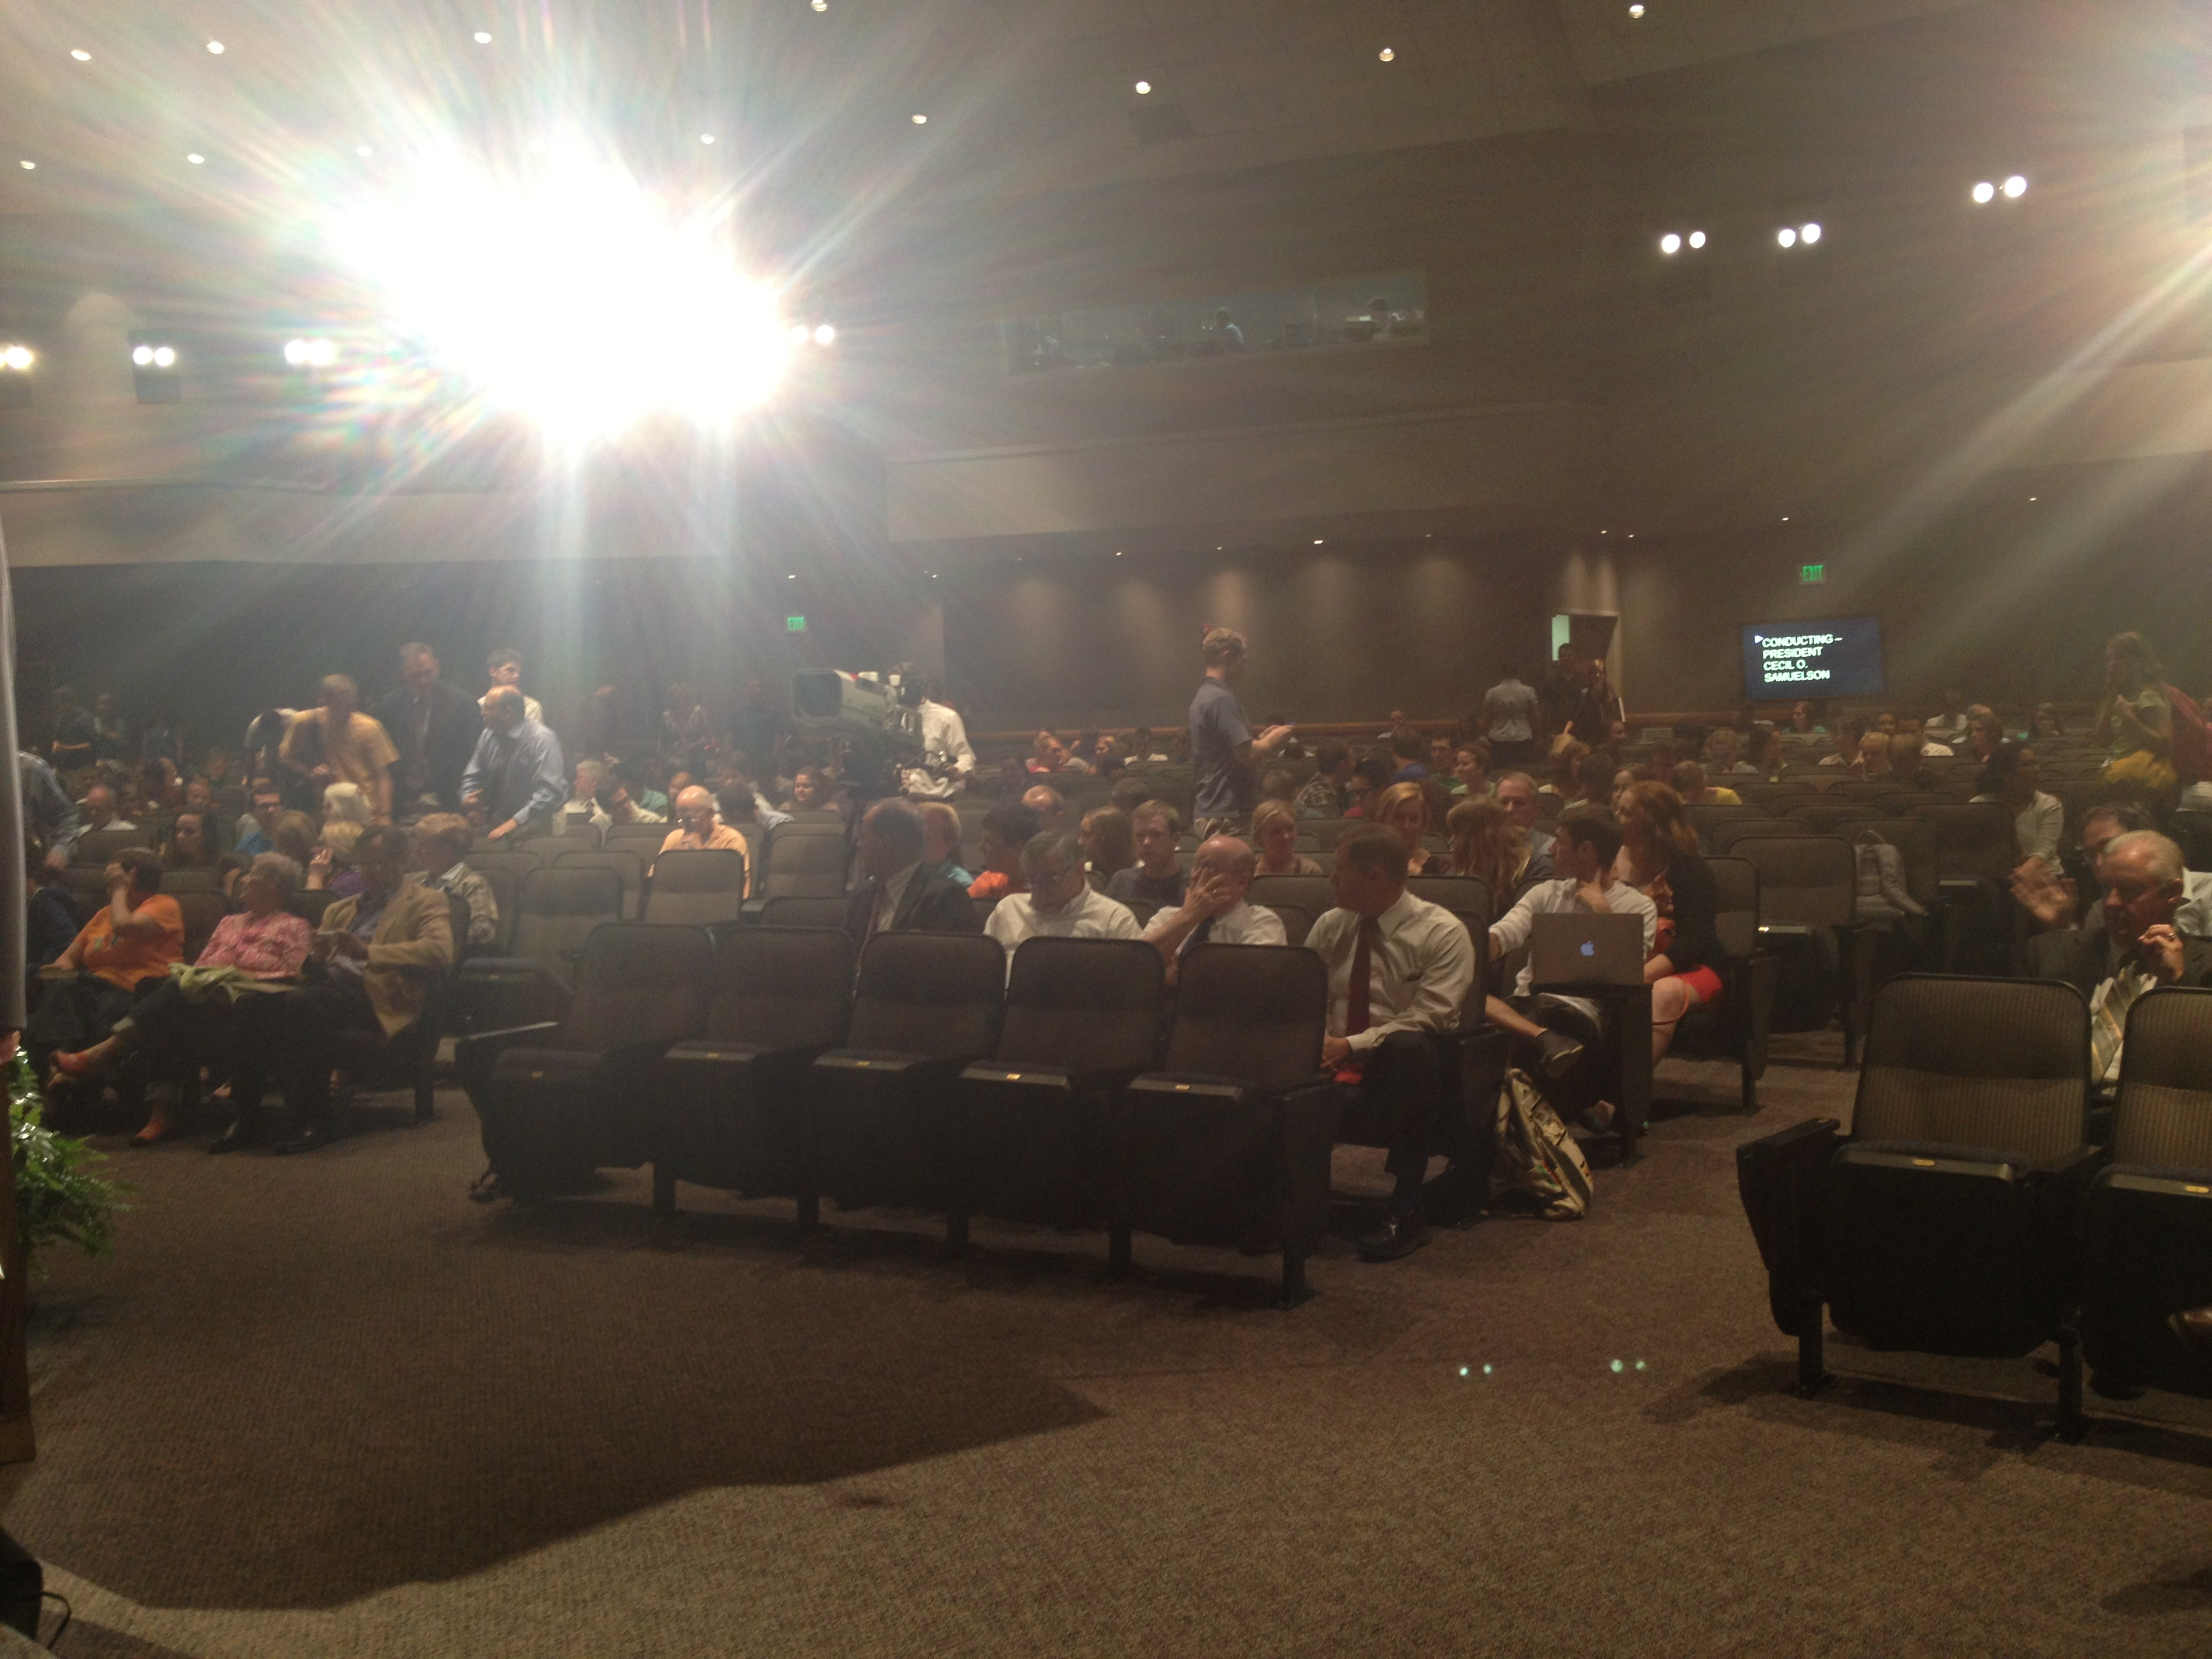 Lights shine and teleprompters roll as the Devotional begins. (Photo by Trevor Carver)